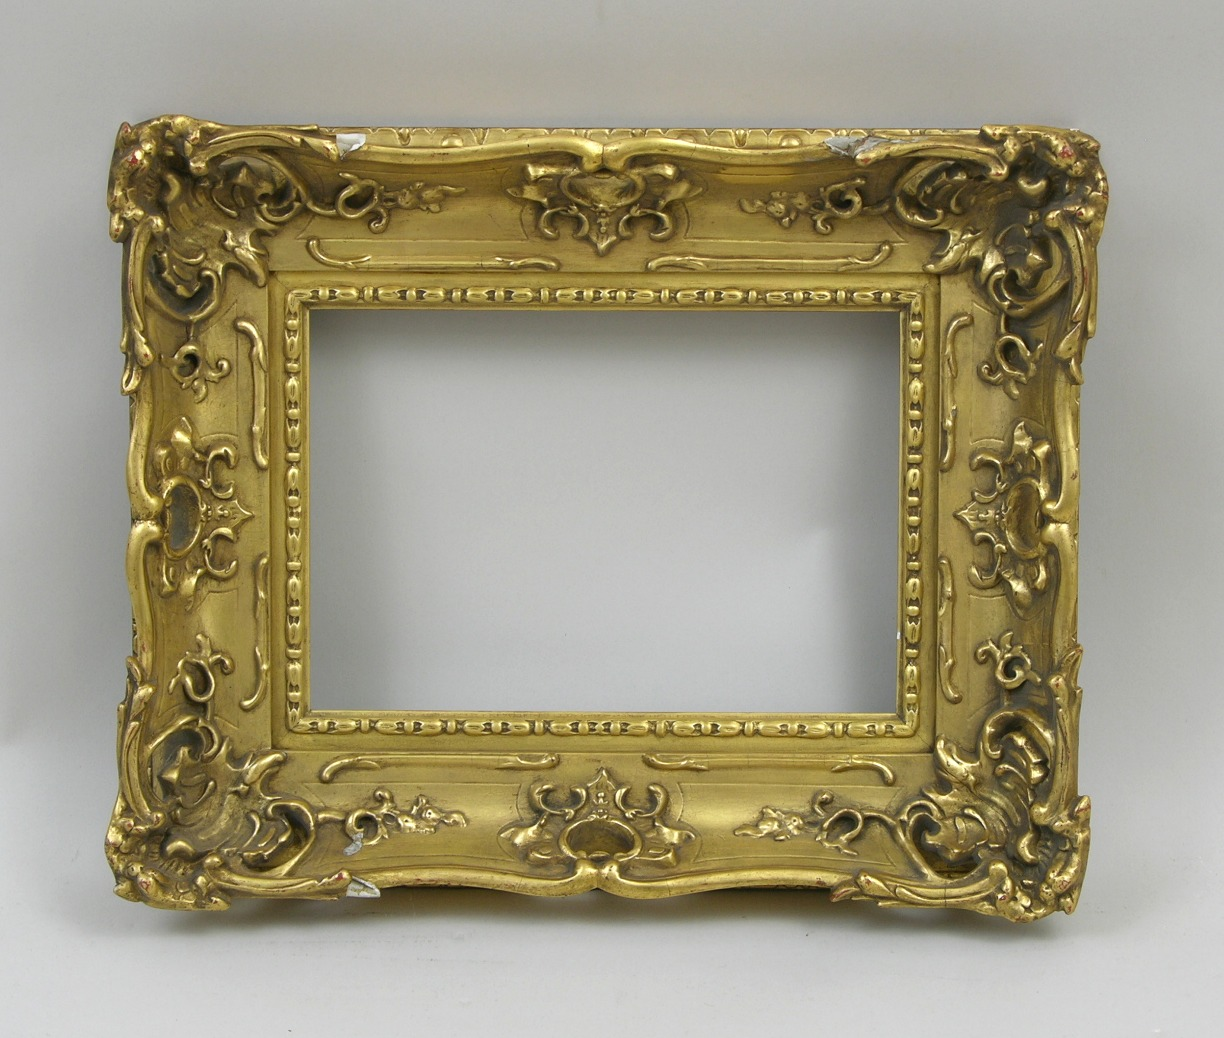 An Antique Beers Brothers Picture Frame, 09.13.08, Sold: $644